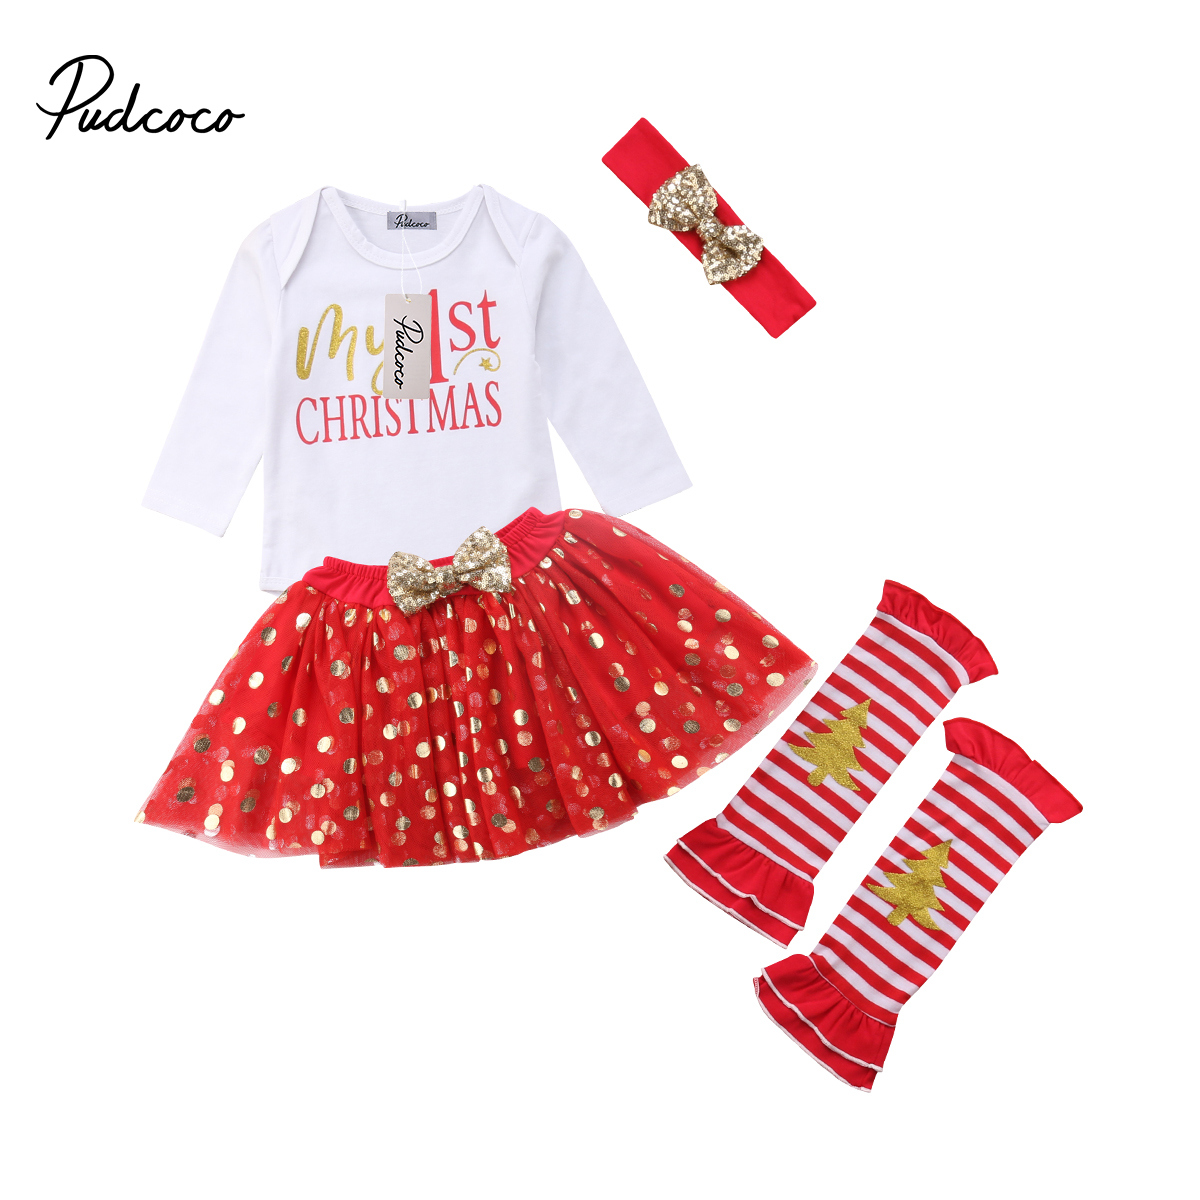 5Pcs Newborn Baby Girls My 1st Christmas Long Sleeve Romper +Dot Skirts+Leg Warmers+Sequins Headband Outfits Clothes Sets 0-24M 2016 new arrival baby girls outfits halloween baby kids boutique baby girl halloween sets with necklace and headband leg warmers